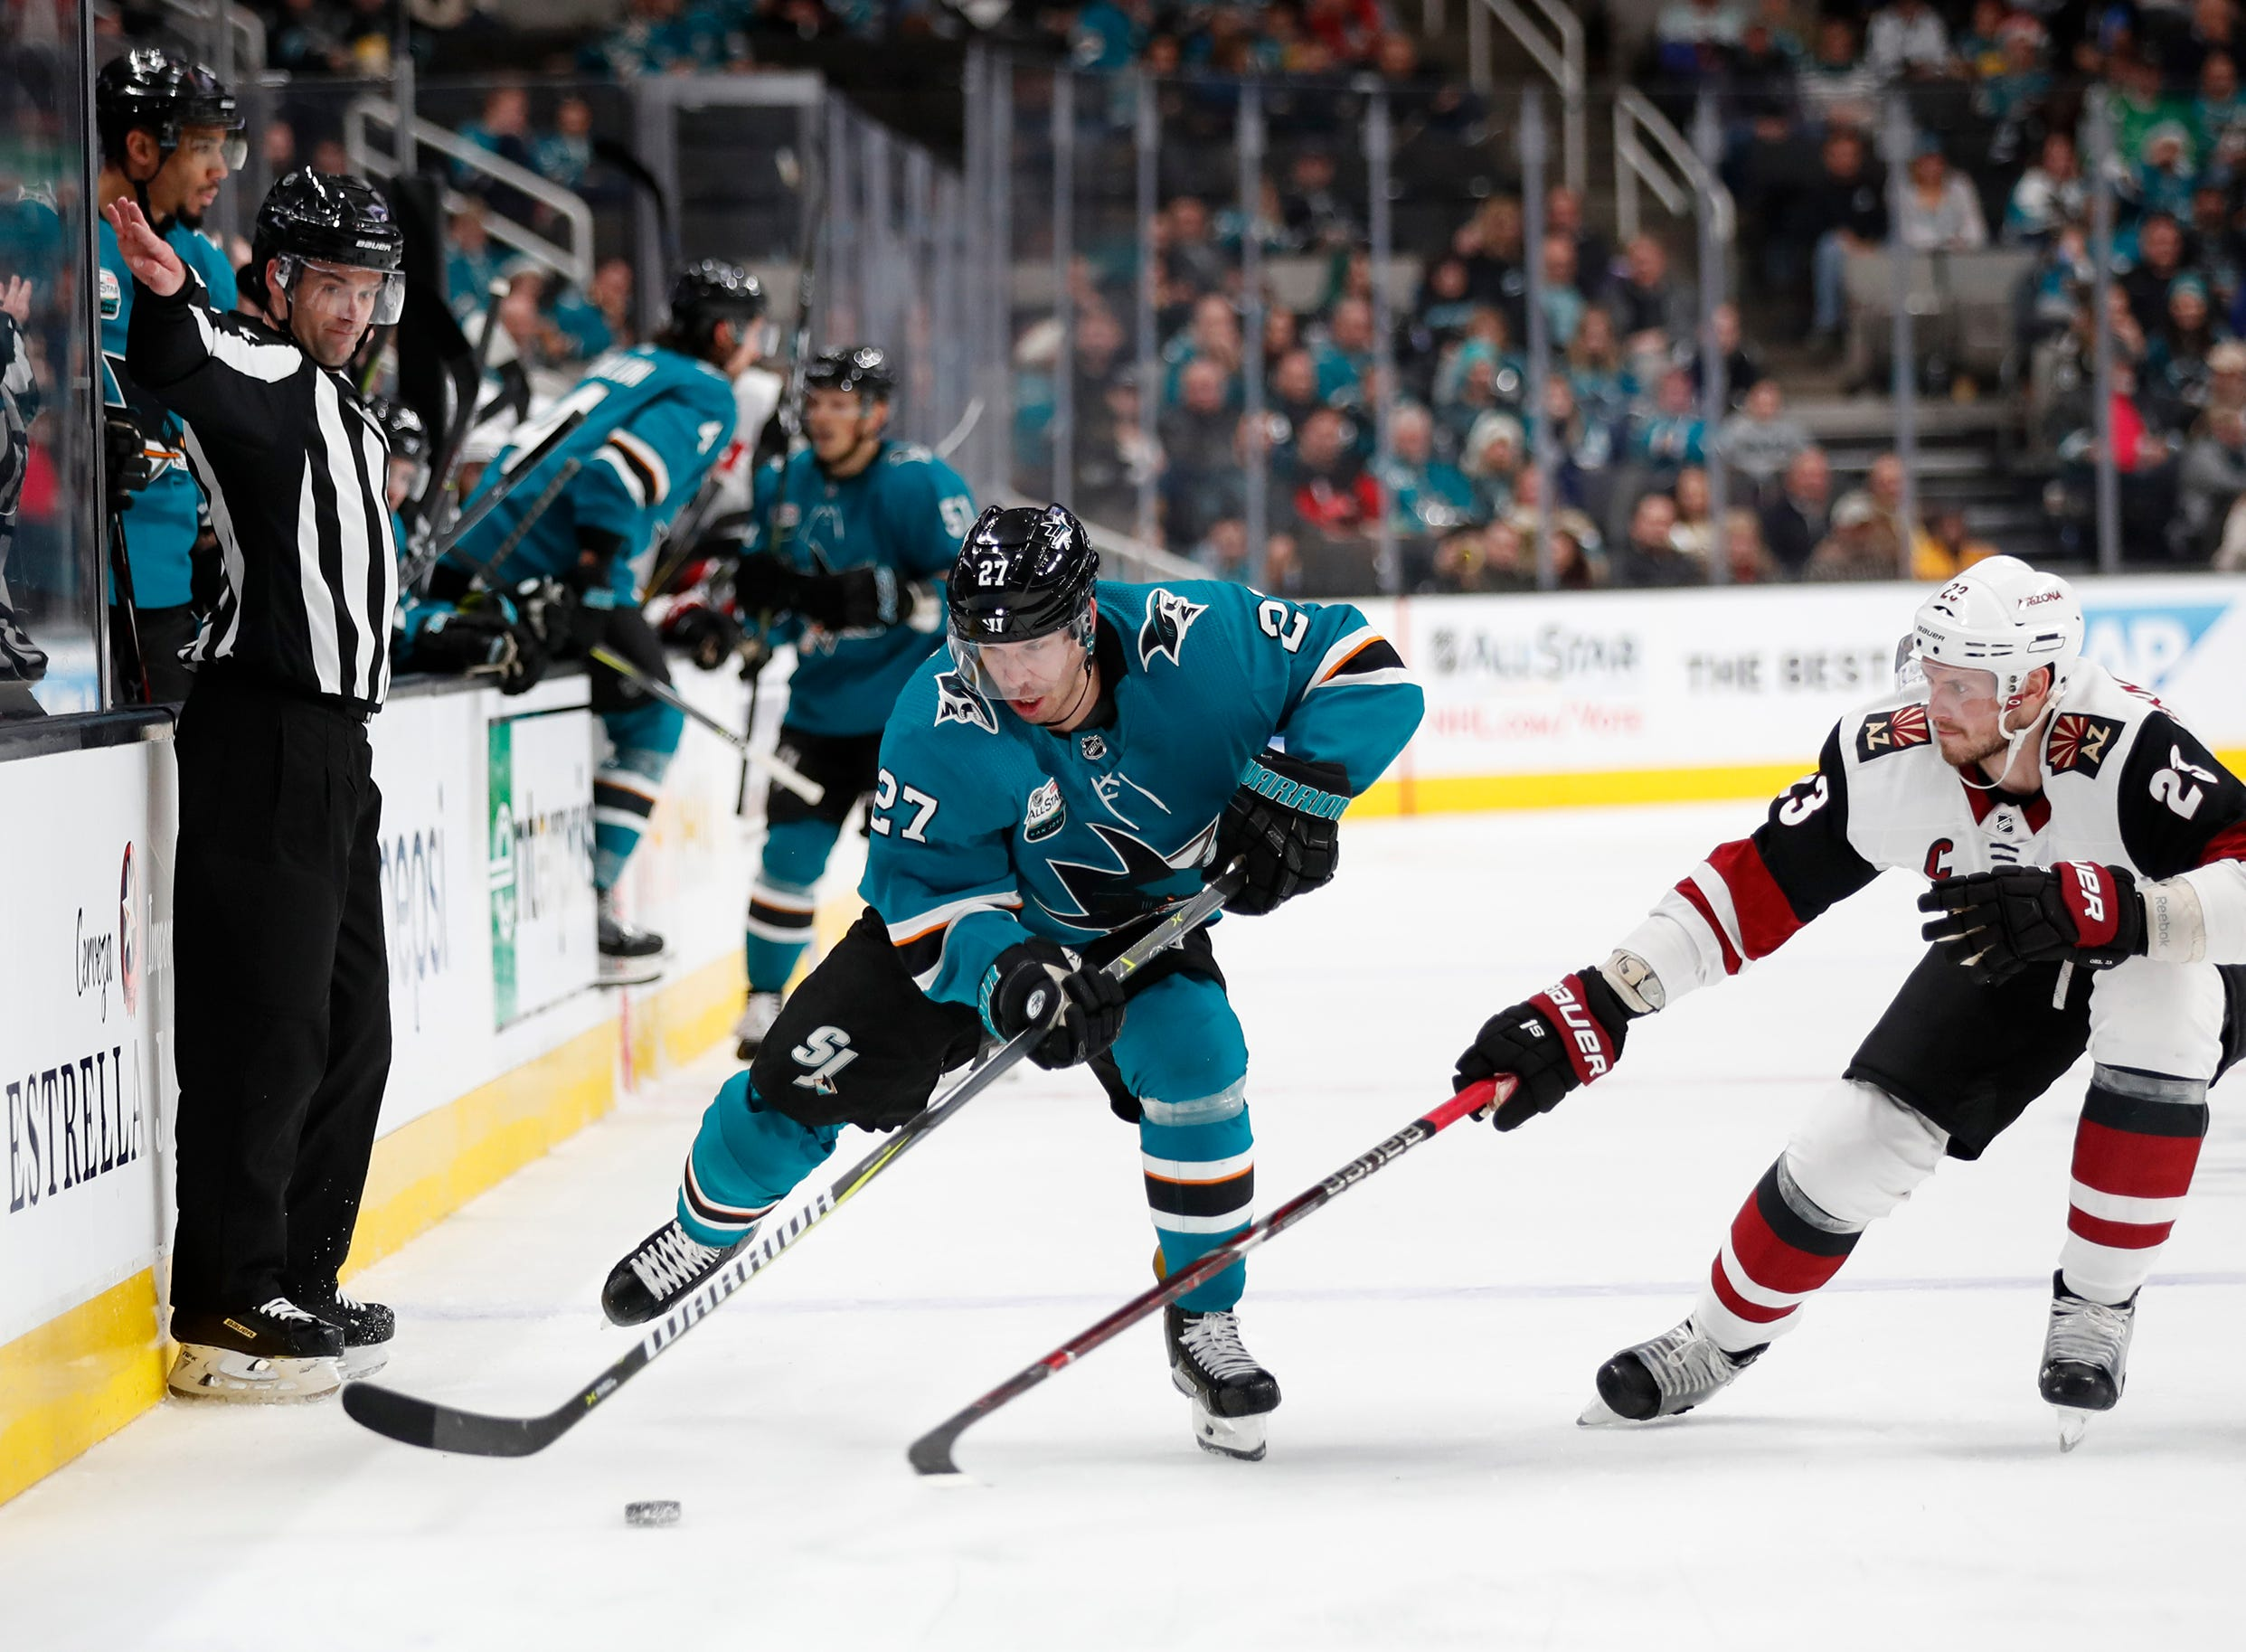 San Jose Sharks' Joonas Donskoi (27) battles for the puck against the Arizona Coyotes' Oliver Ekman-Larsson (23) in the second period of an NHL hockey game in San Jose, Calif., Sunday, Dec. 23, 2018. (AP Photo/Josie Lepe)